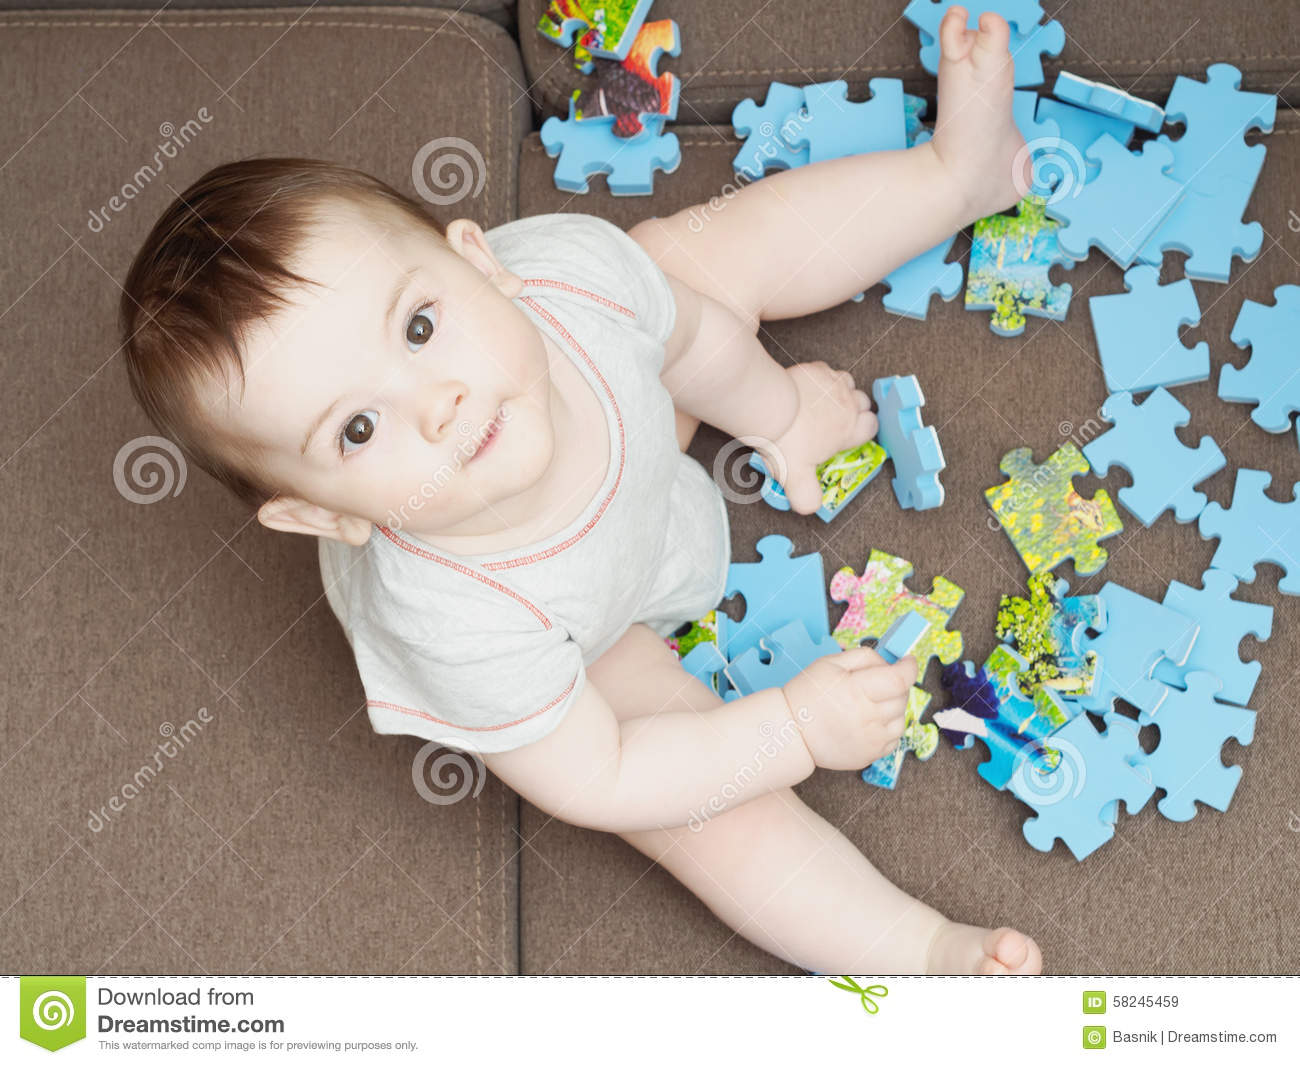 Baby Boy Playing With Puzzle Pieces On Sofa In The Living Room At Home Stock Image Image Of